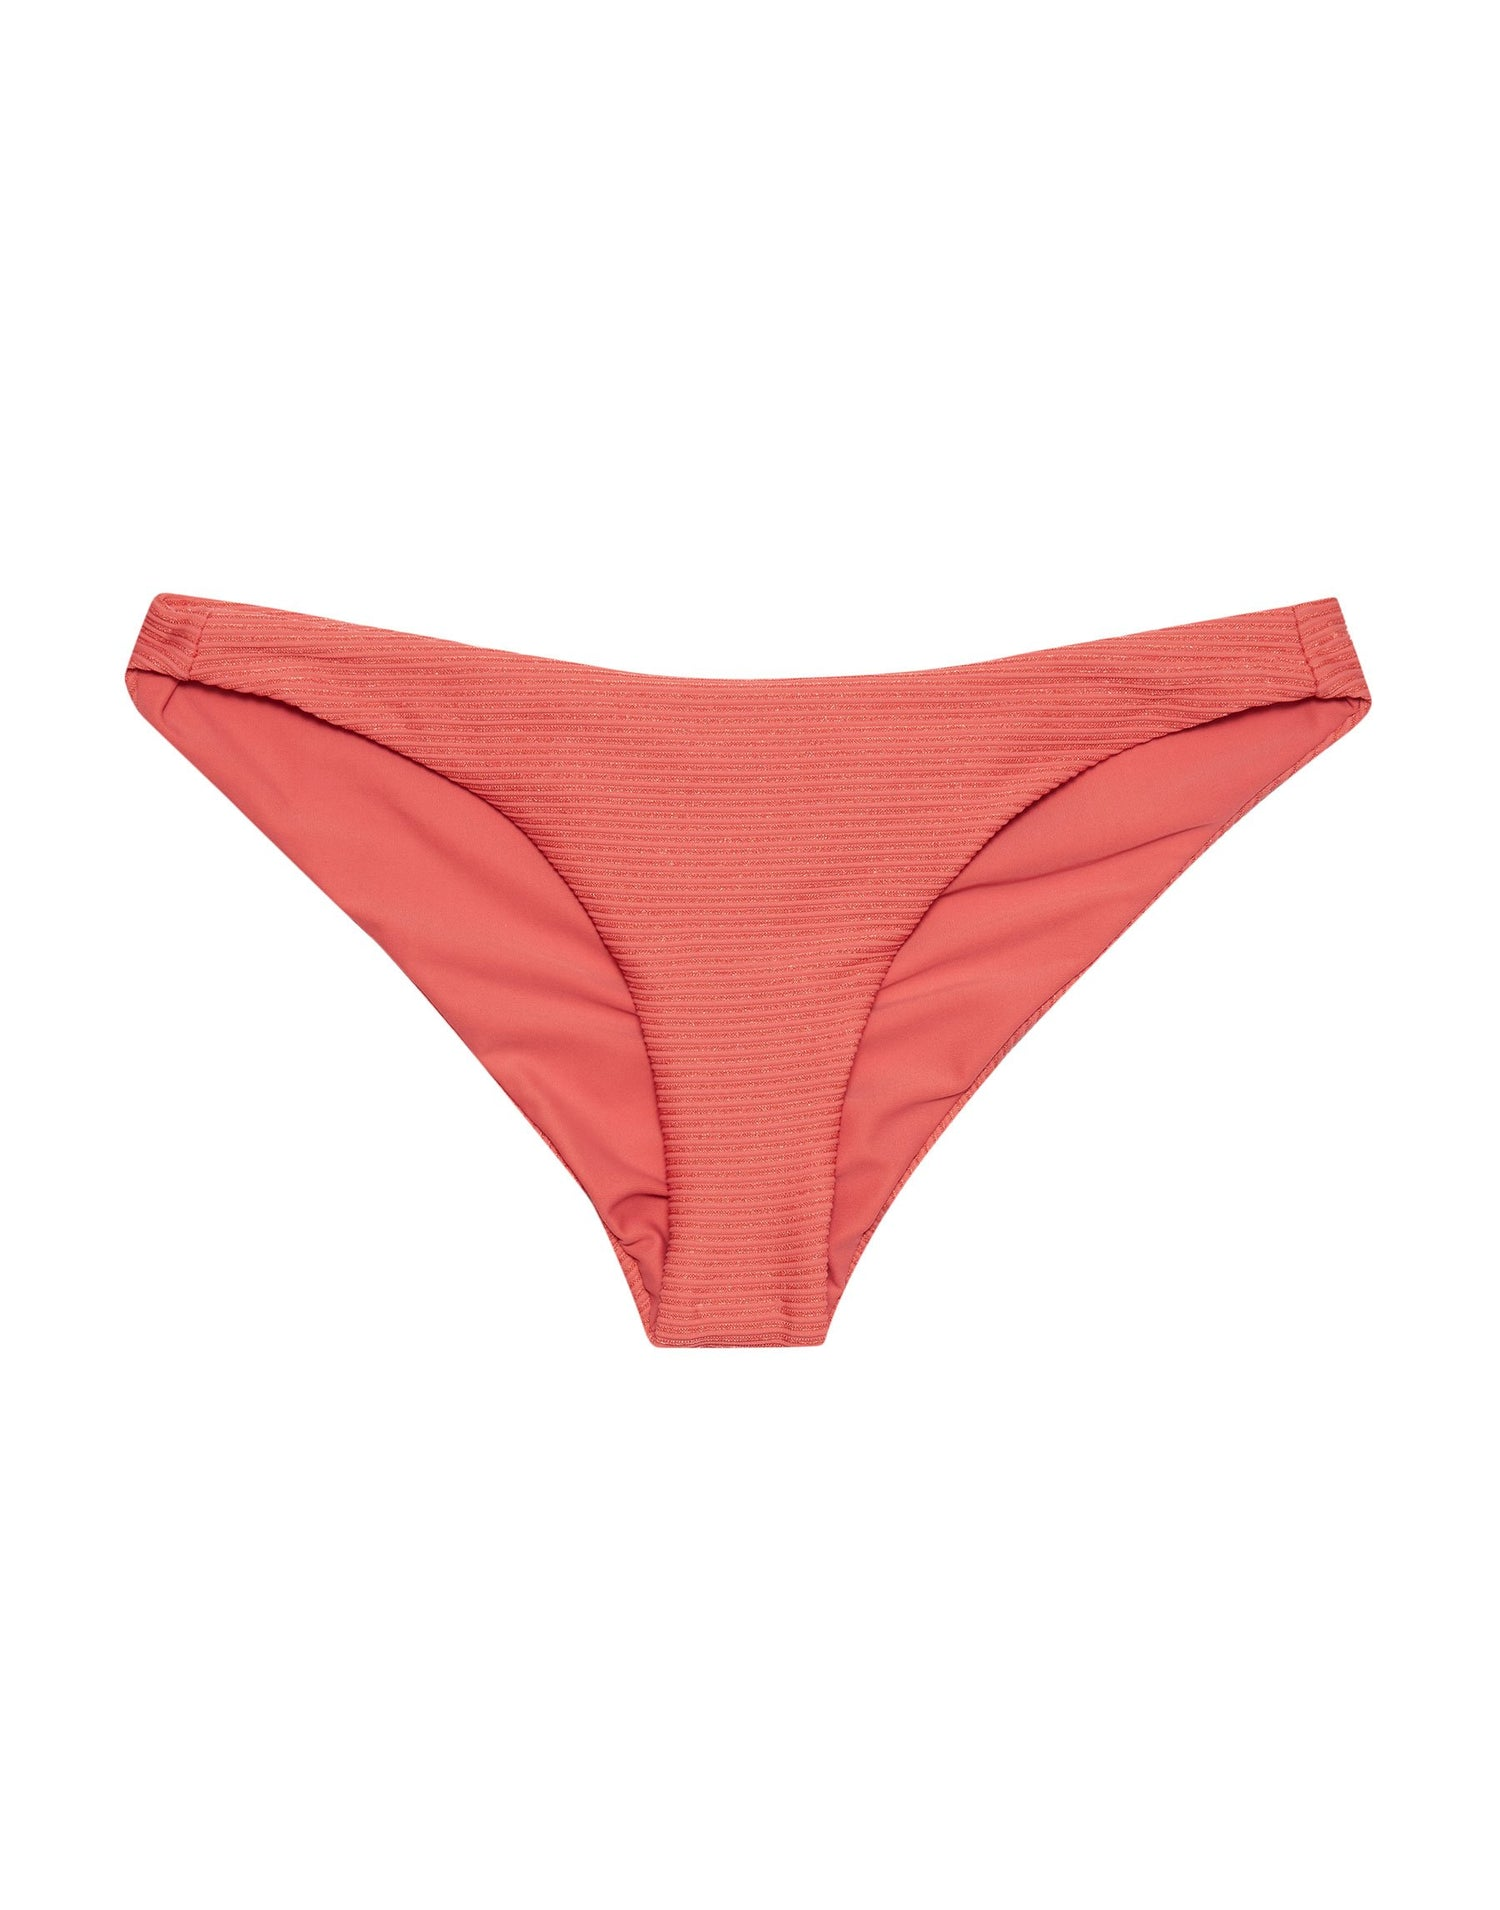 Angela Skimpy Bikini Bottom in Rose Pink Rib - product view